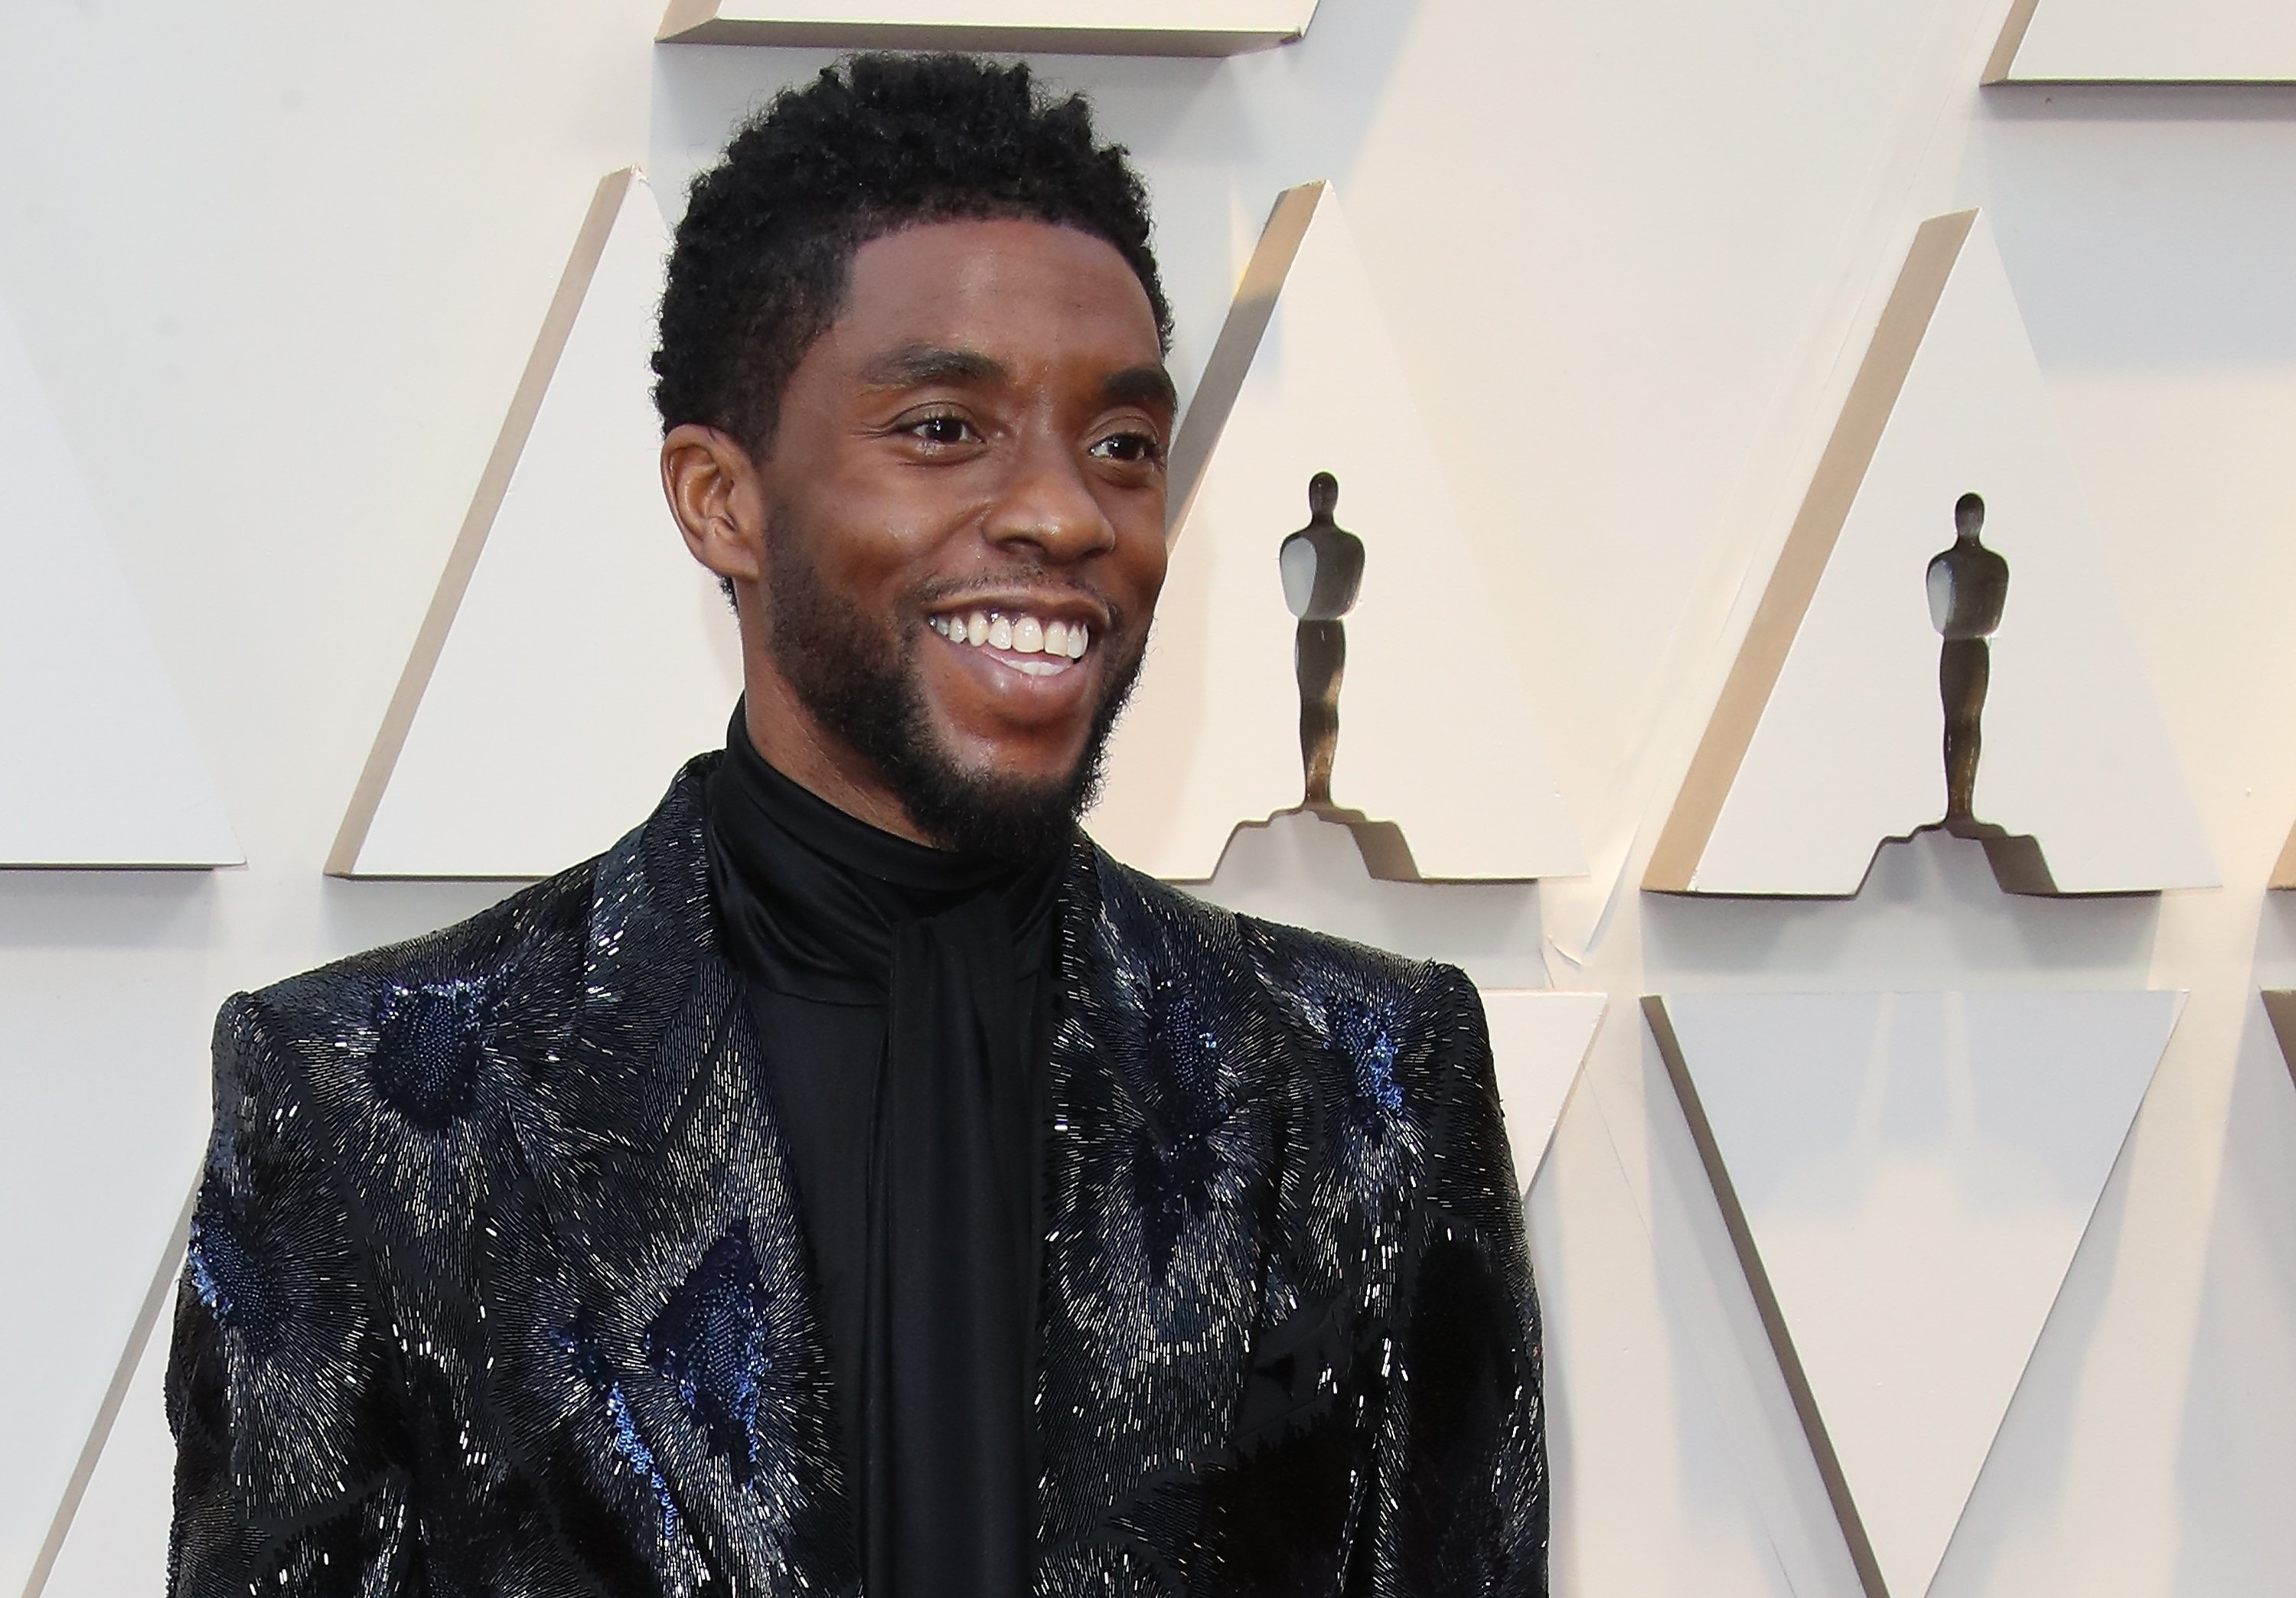 Chadwick Boseman attends the 91st Annual Academy Awards on February 24, 2019, in Hollywood, California. | Source: Getty Images.